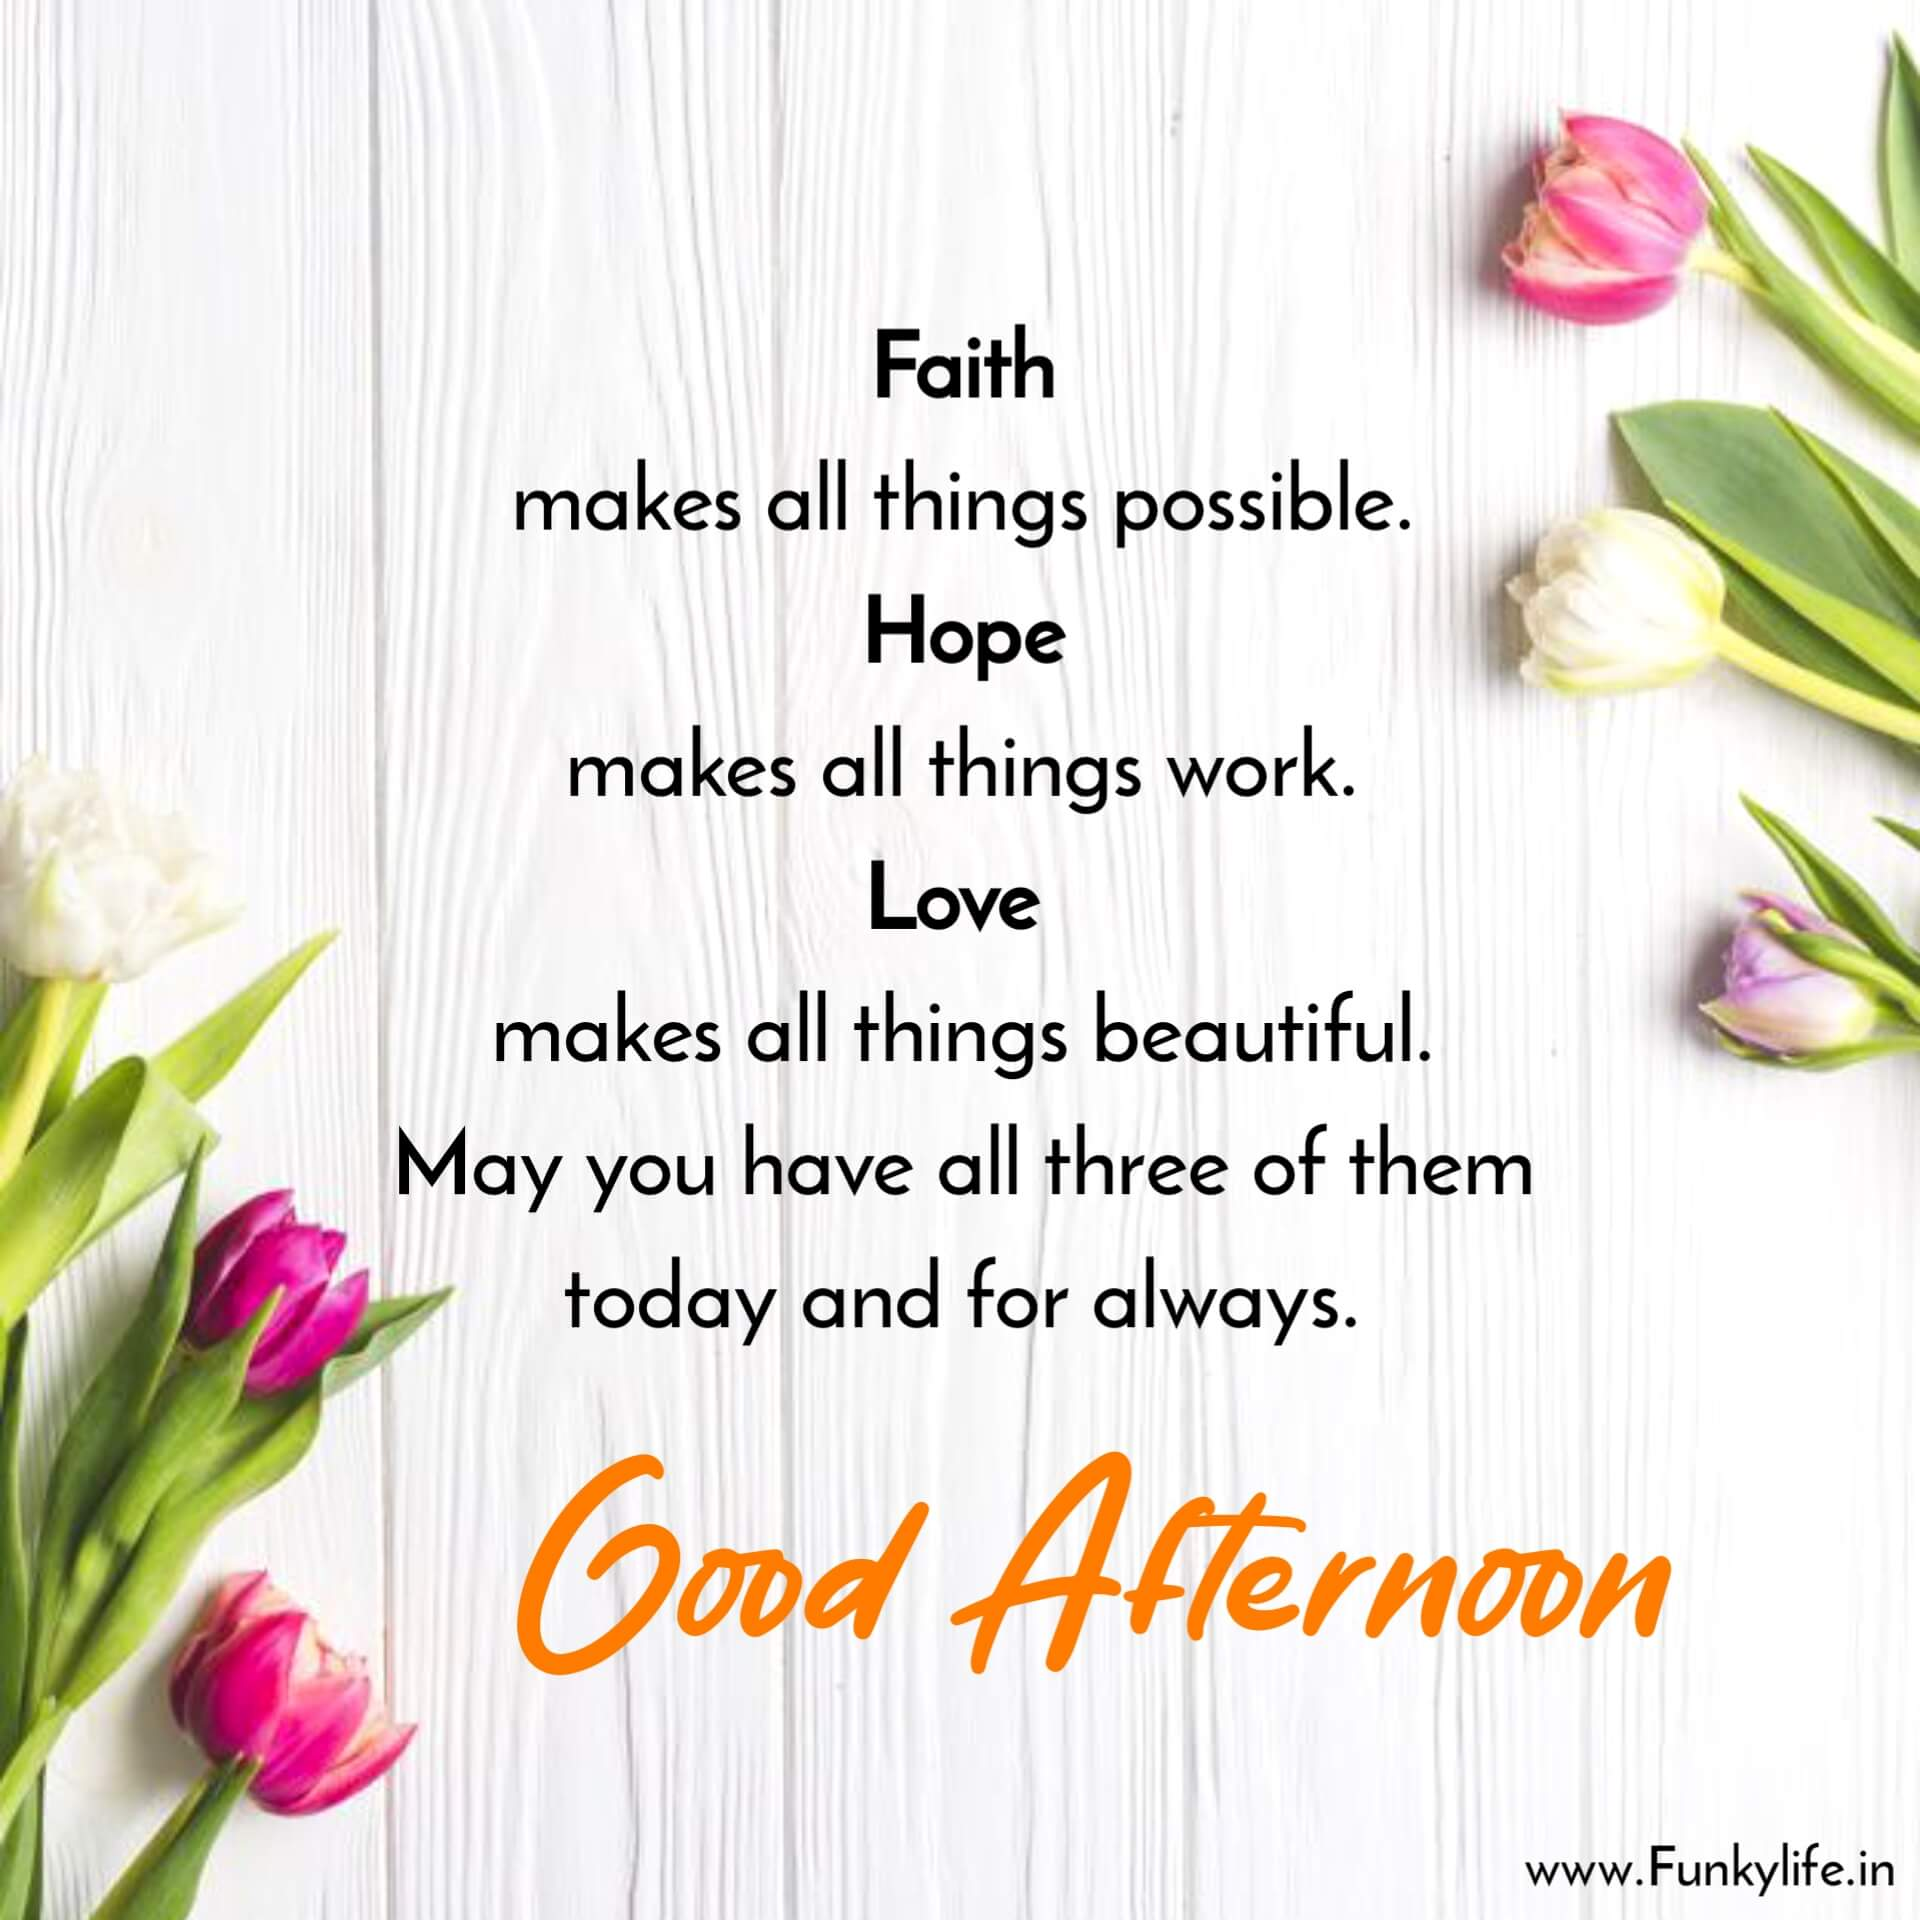 Beautiful Good Afternoon Image with Quote